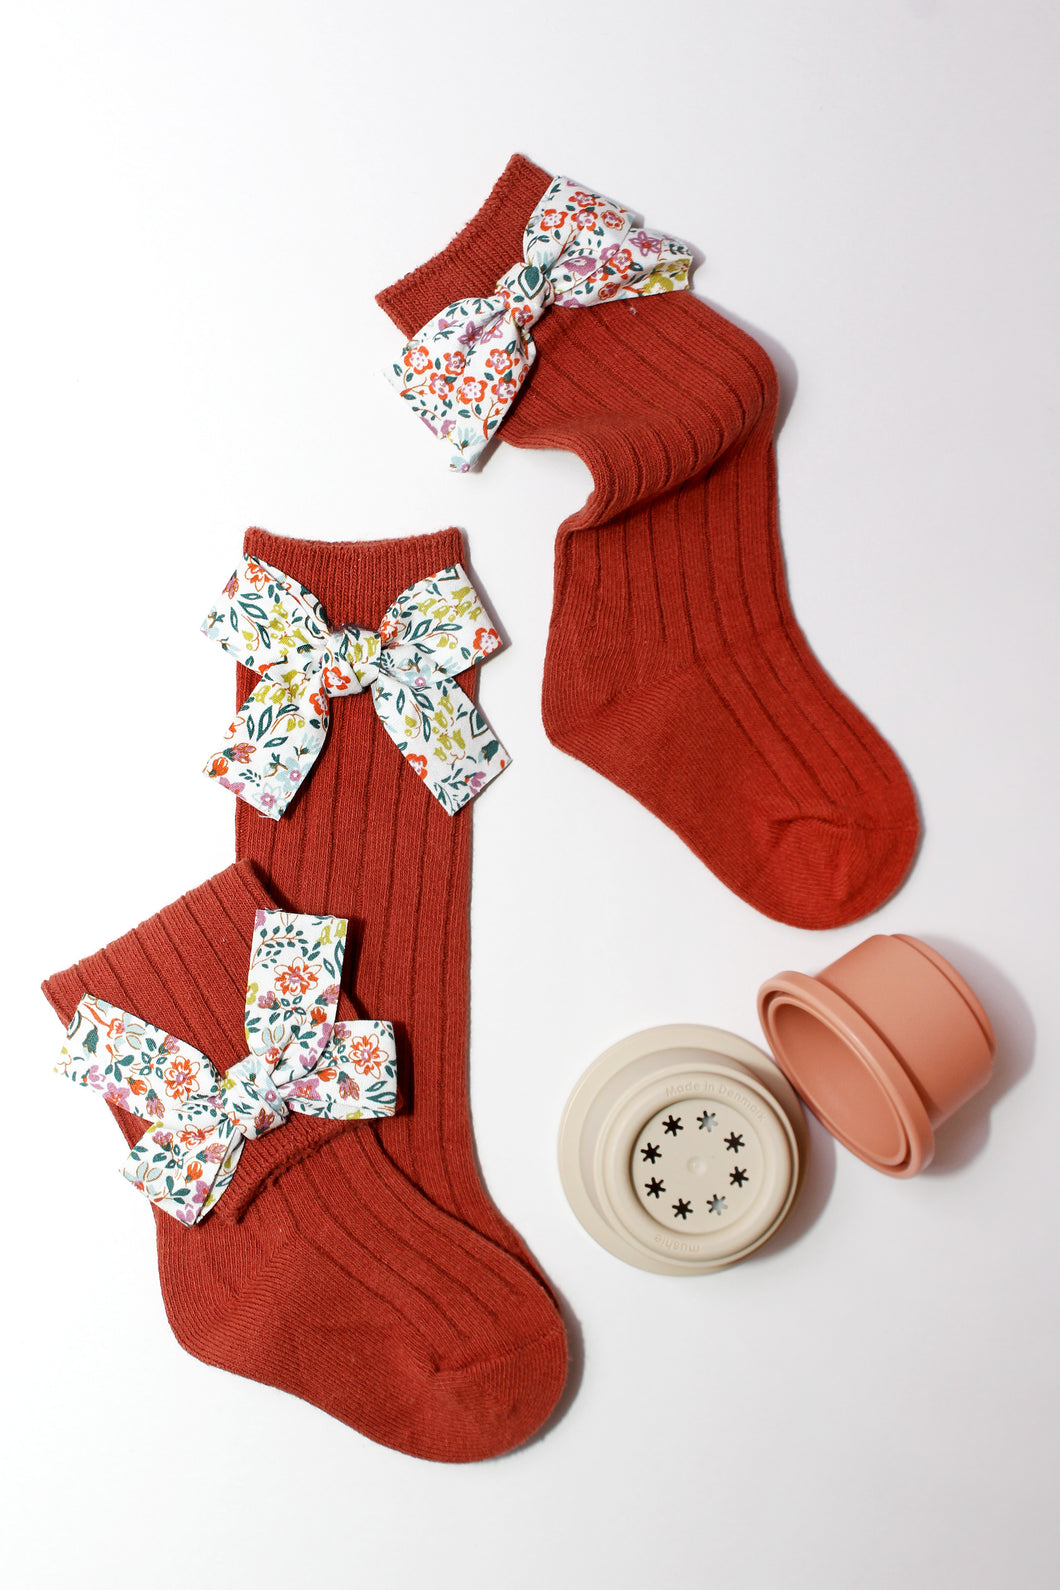 Ribbed Floral Bow Knit Knee High Socks